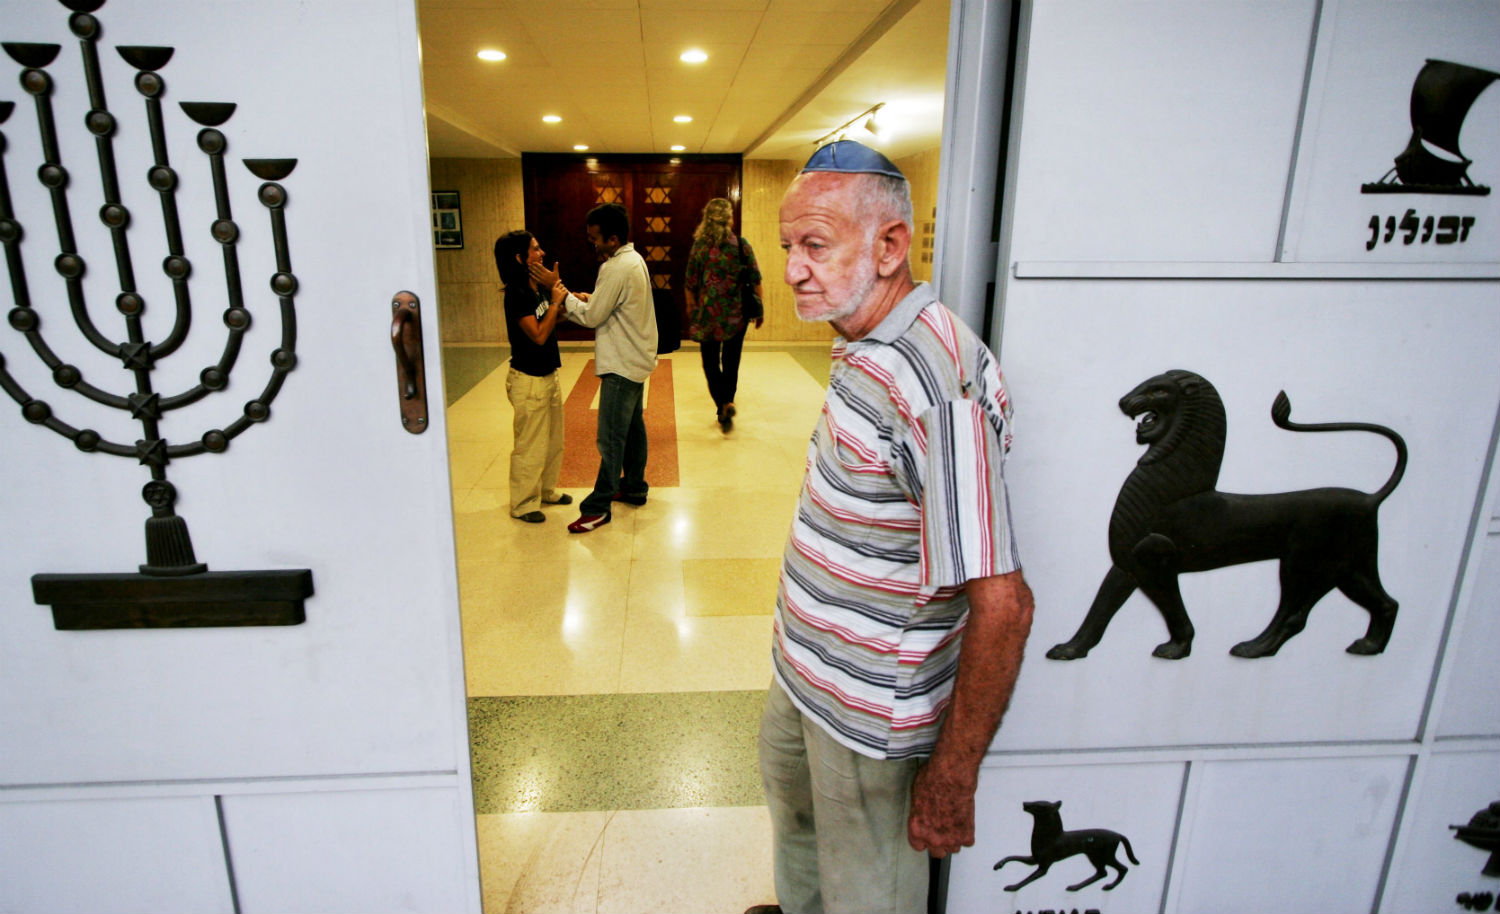 Salomon Gonte Leyderman, 83, and other Cuban Jews enter the Beth Shalom synagogue on December 29, 2006 in Havana. Sven Creutzmann/Mambo Photo/Getty Images.